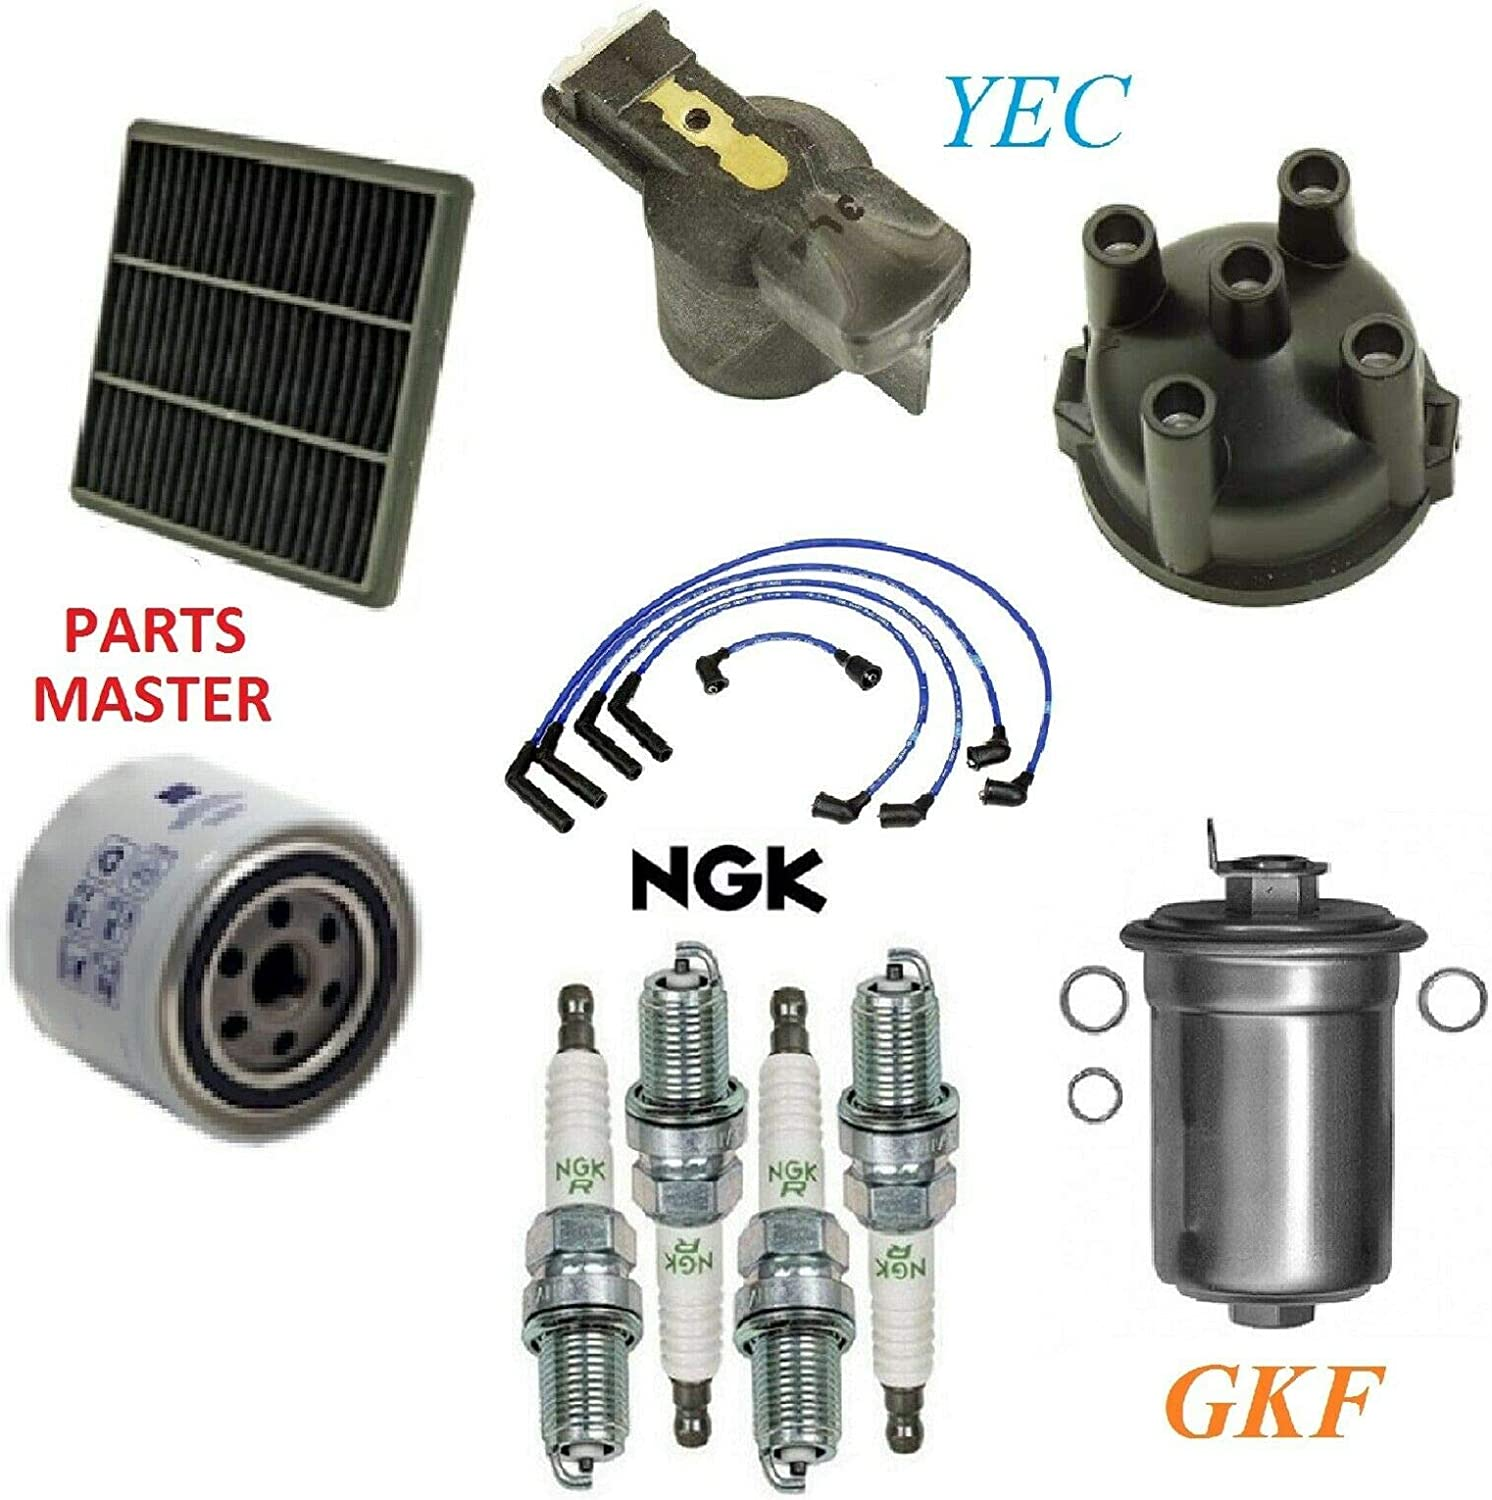 8USAUTO Tune Up Kit 定番スタイル Air Oil Fuel Wire 休日 Rotor Pl Filters Spark Cap